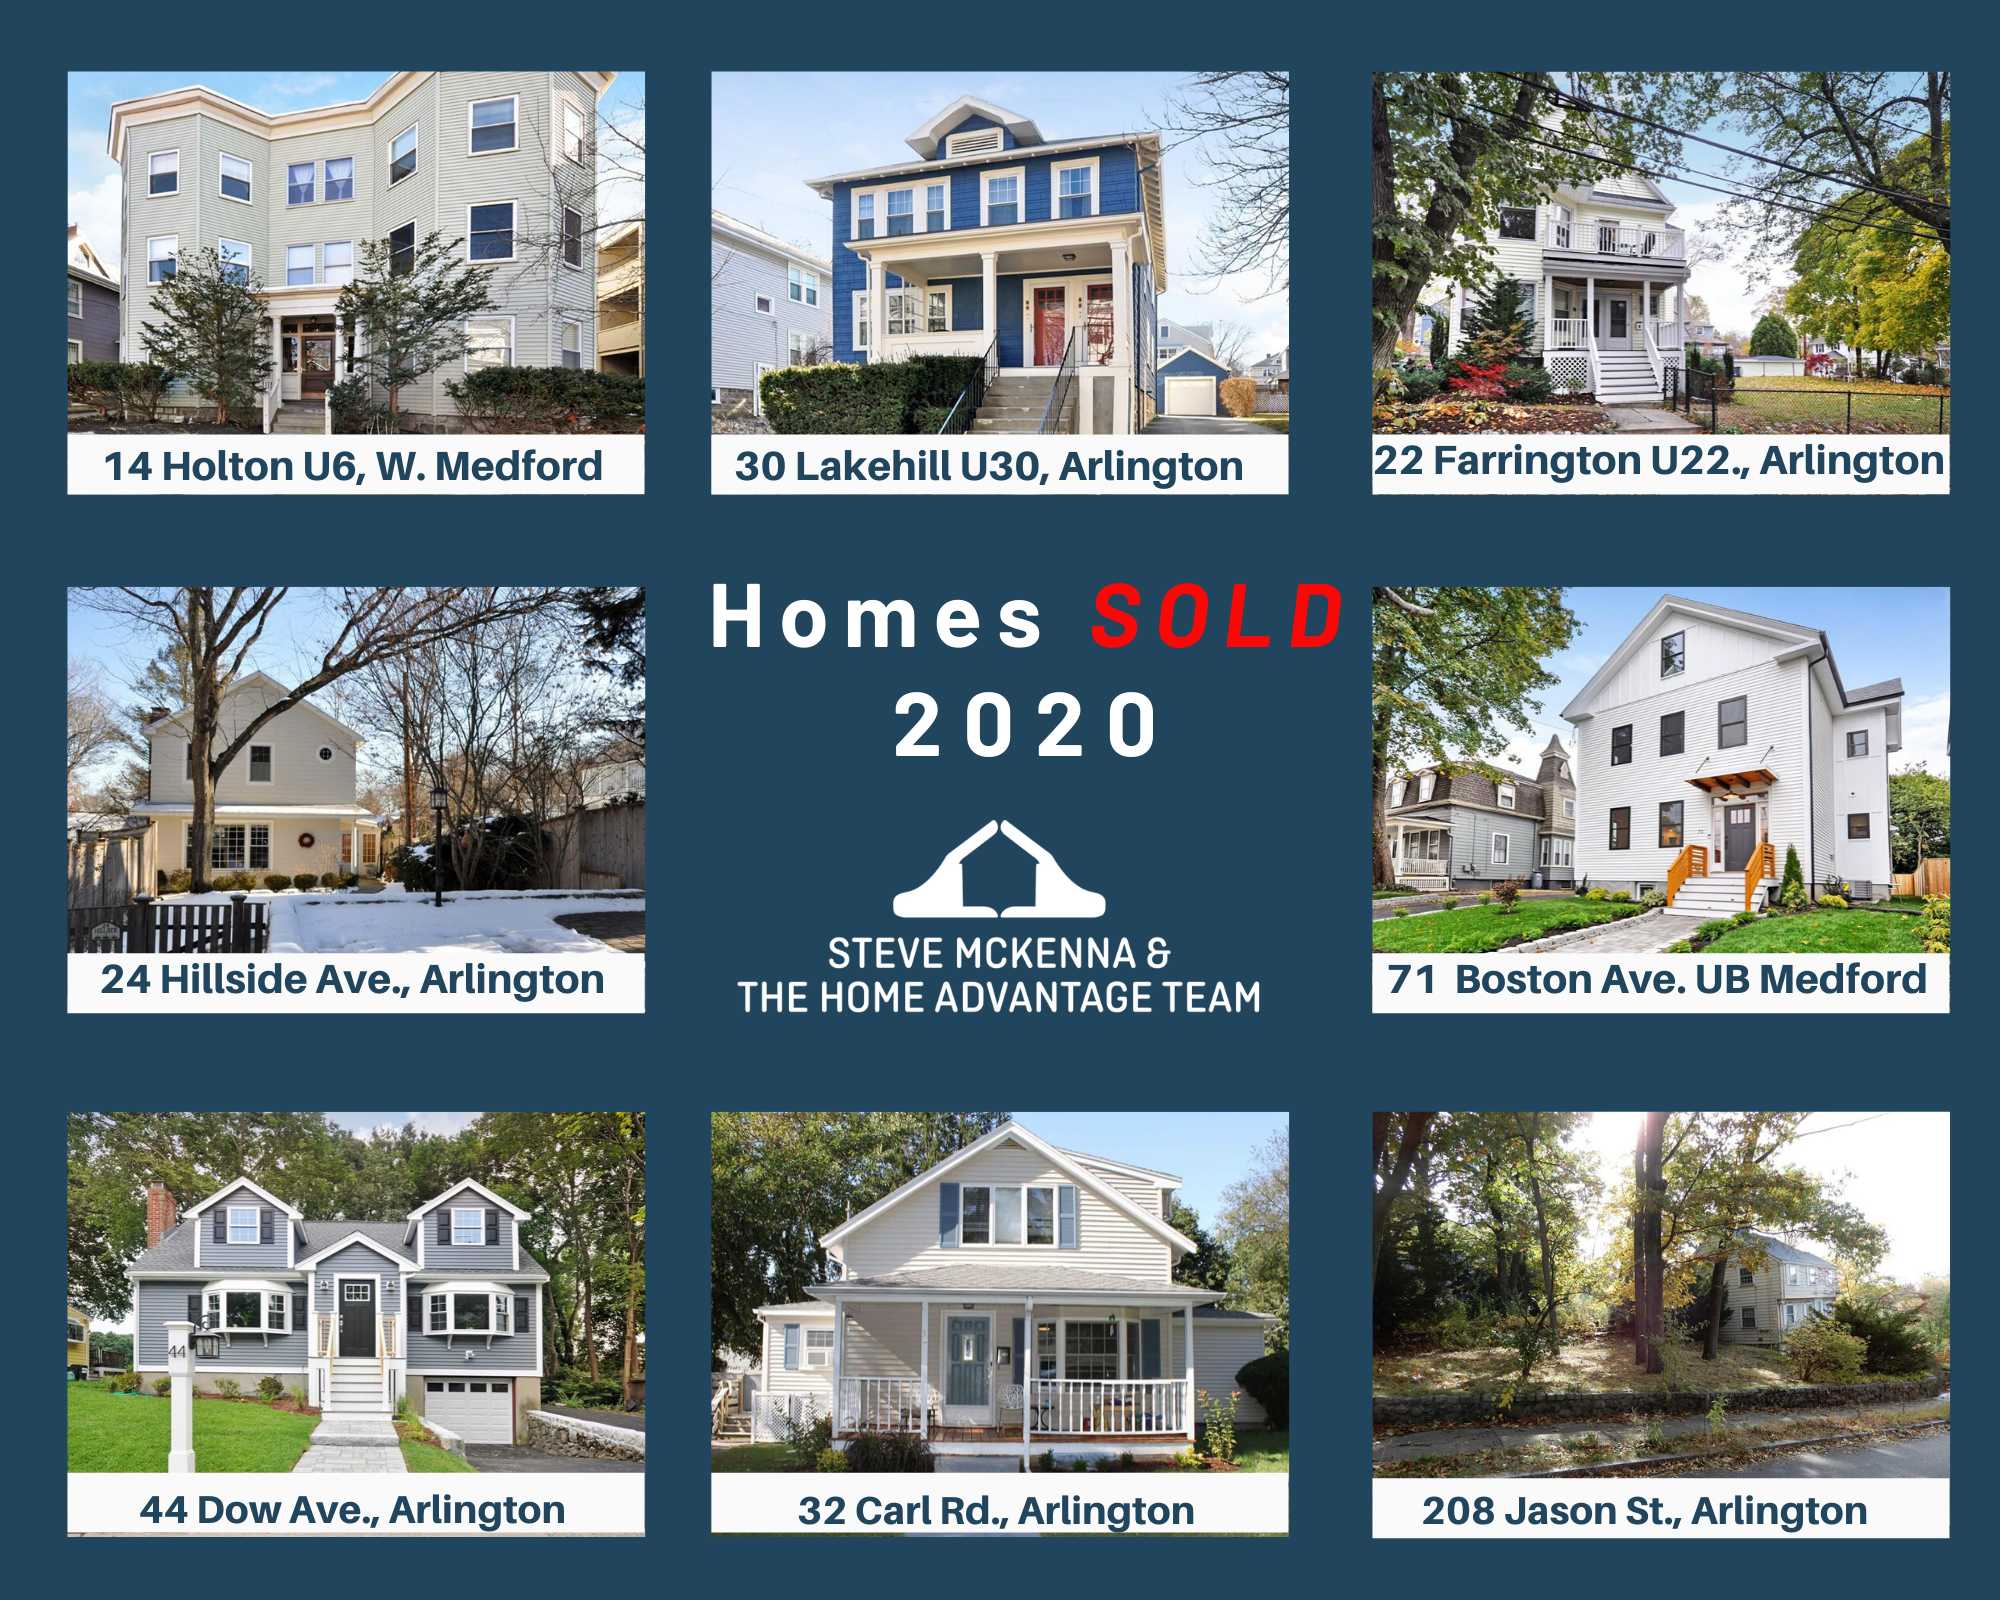 Homes sold in 2020 by Steve McKenna & The Home Advantage Team